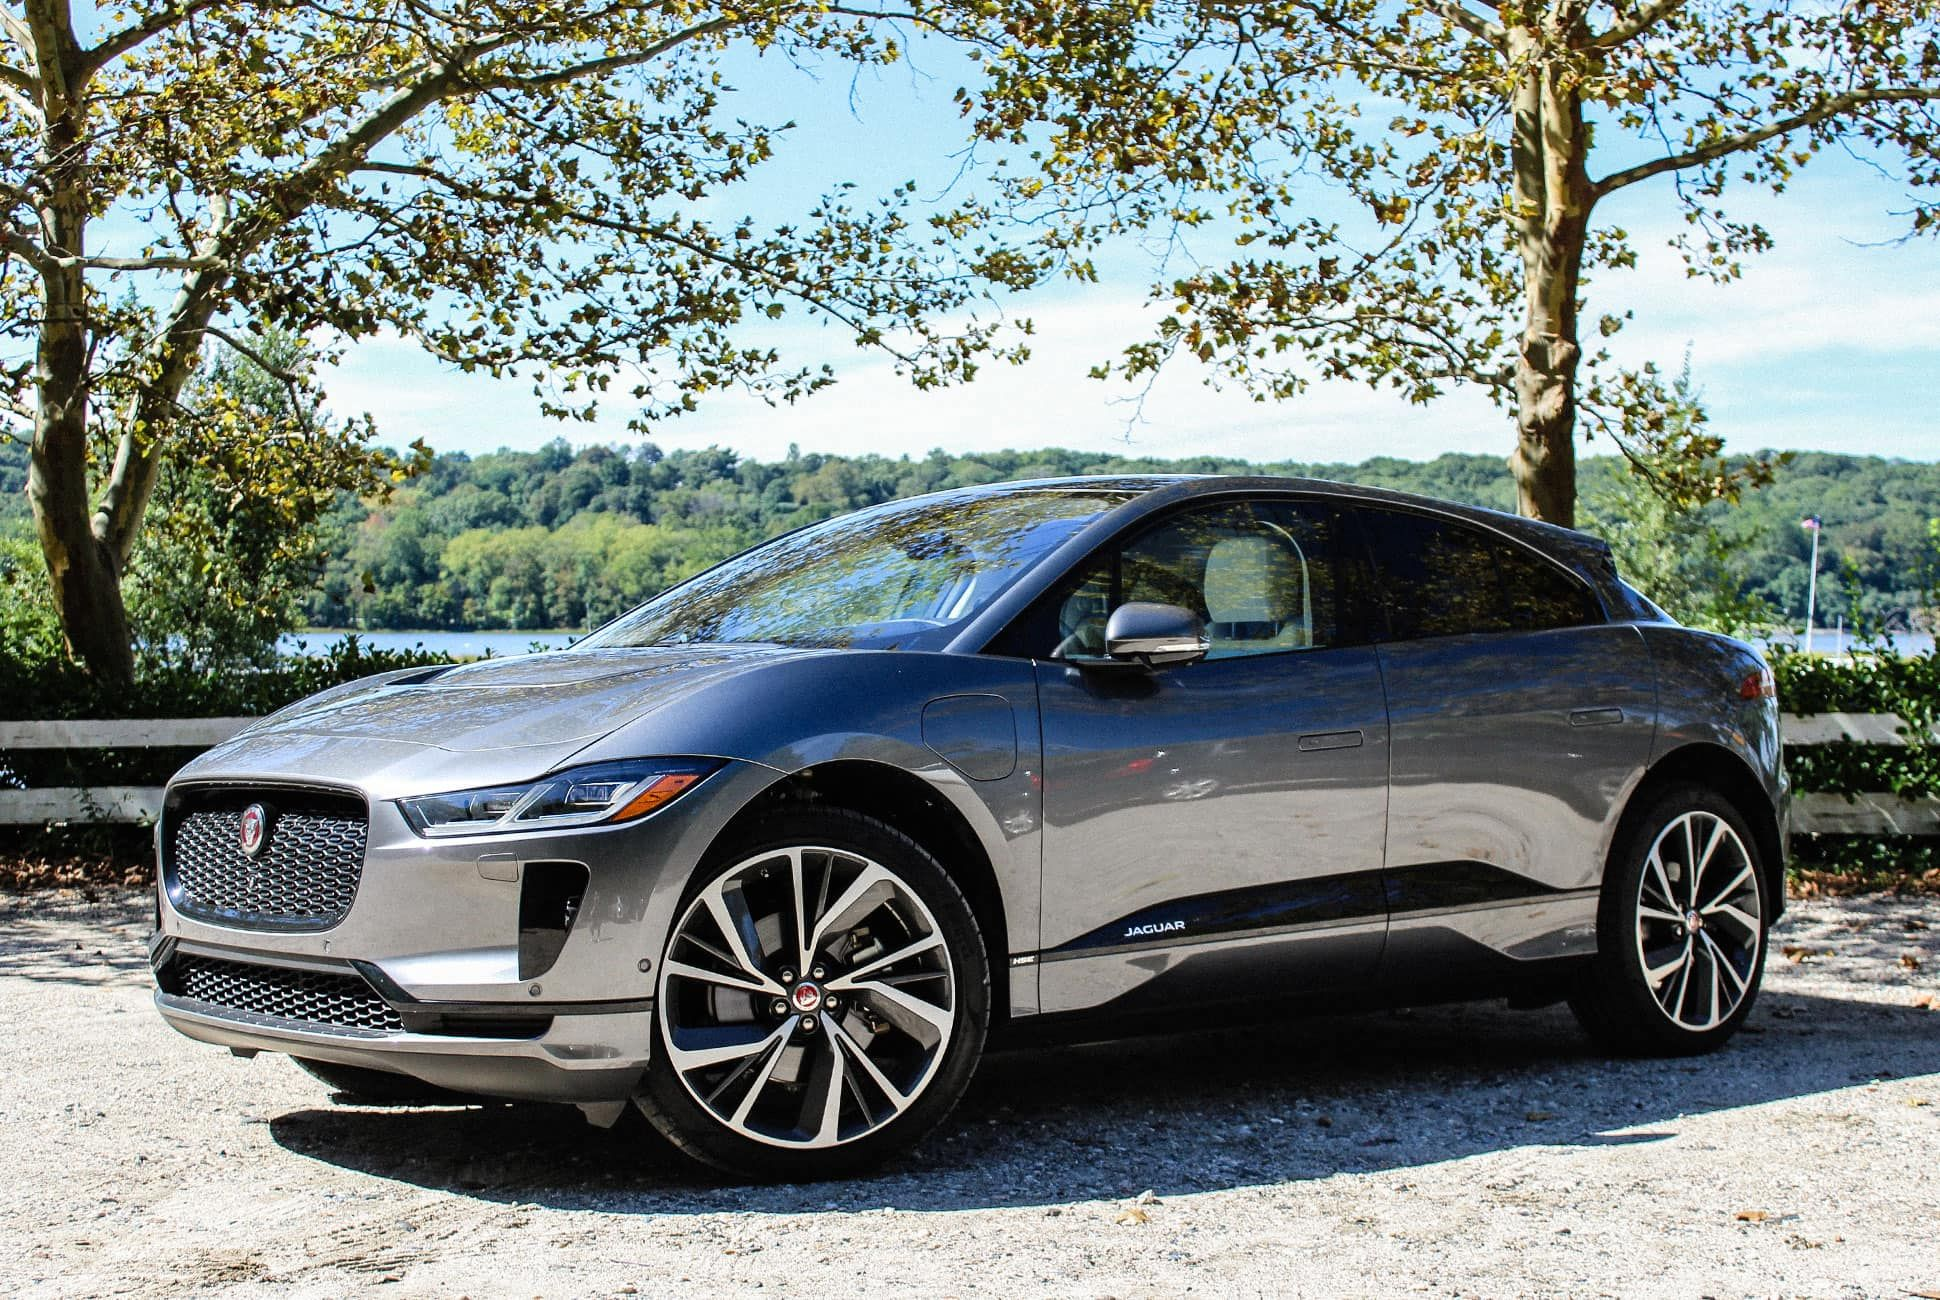 Jaguar-I-Pace-Review-gear-patrol-slide-1